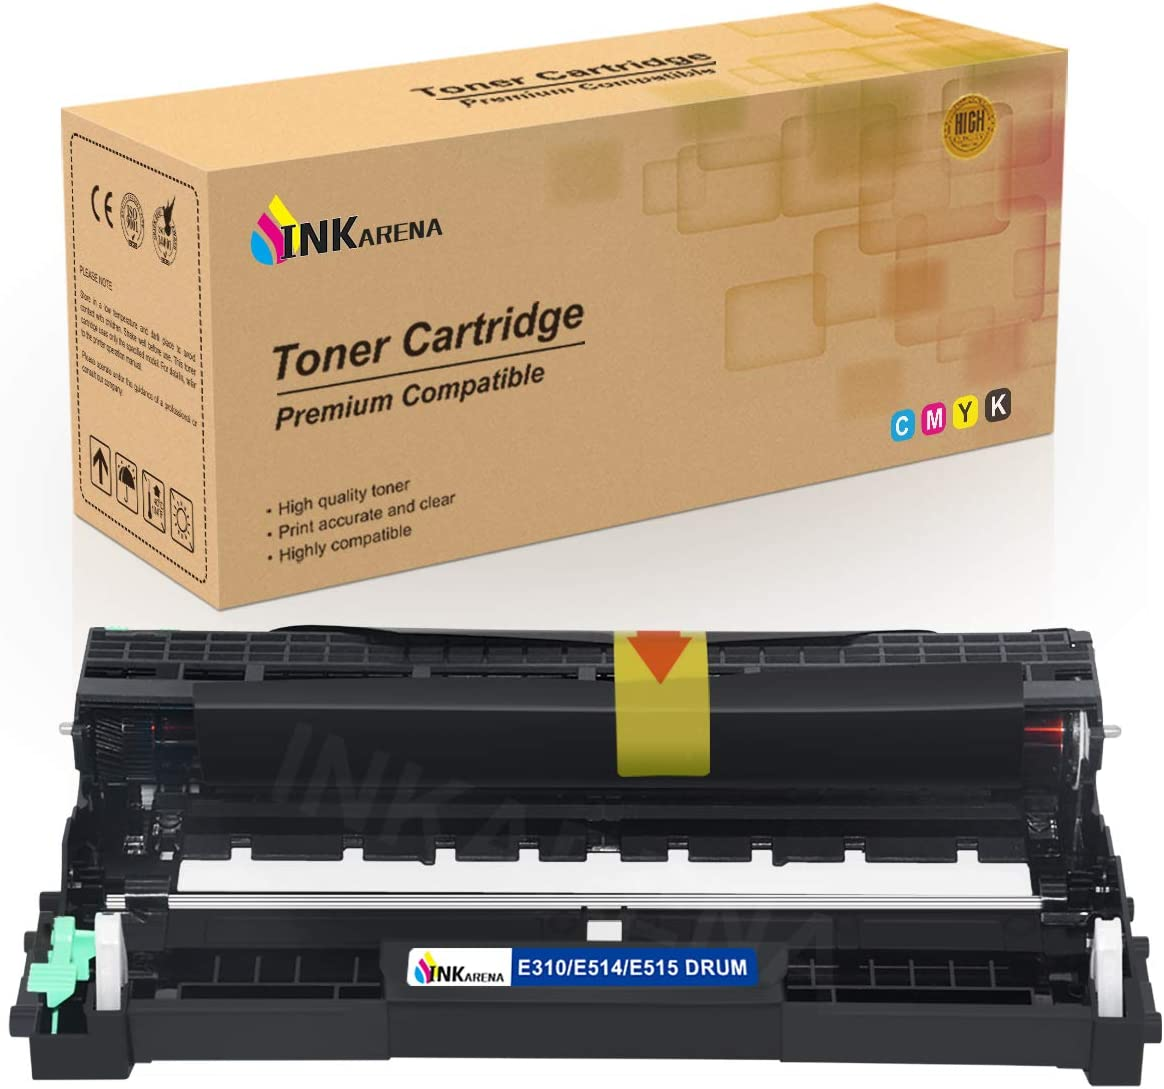 E310 E514 E515 Drum Unit Cartridge Replacement for Dell E310dw E514dw E515dw E515dn Printer Toner Cartridge (High Yield 12,000 Pages, 1 Pack) by Inkarena